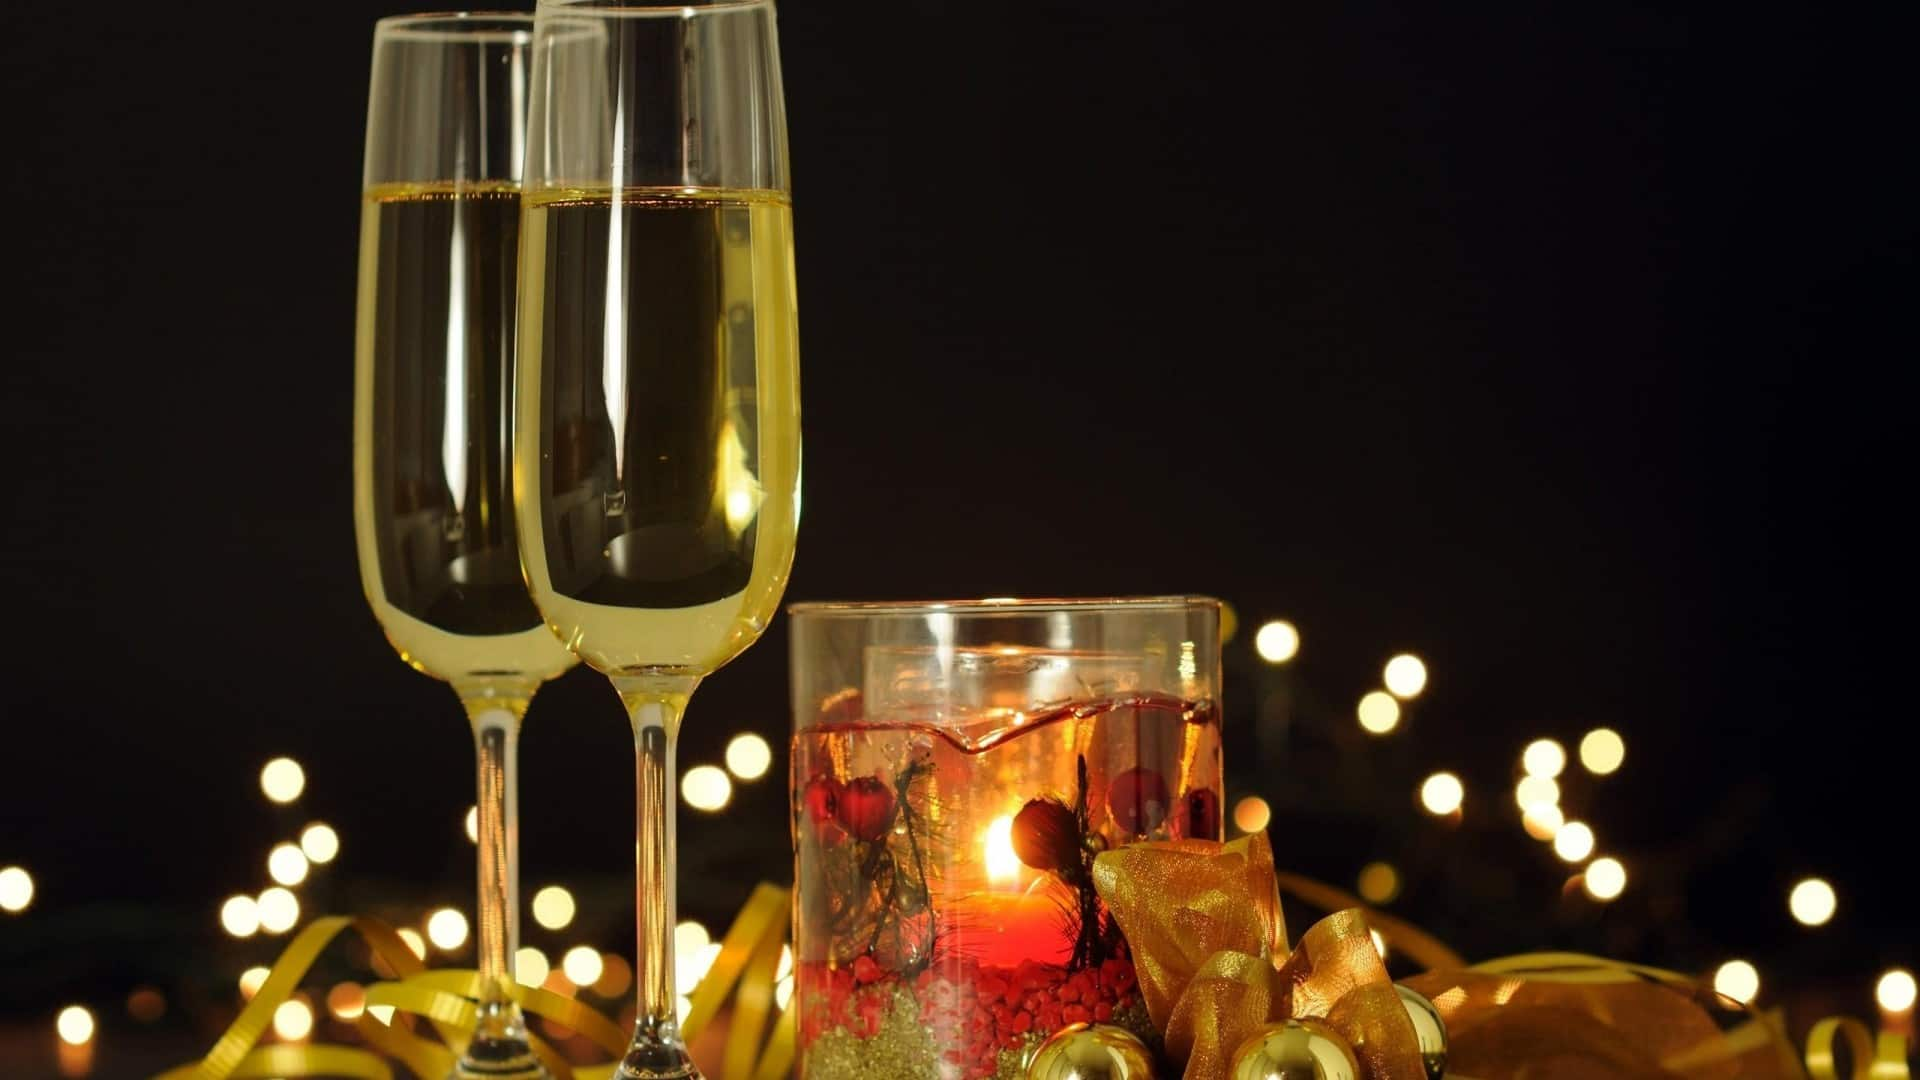 christmas_new_year_balloons_glasses_champagne_candle_35719_1920x1080